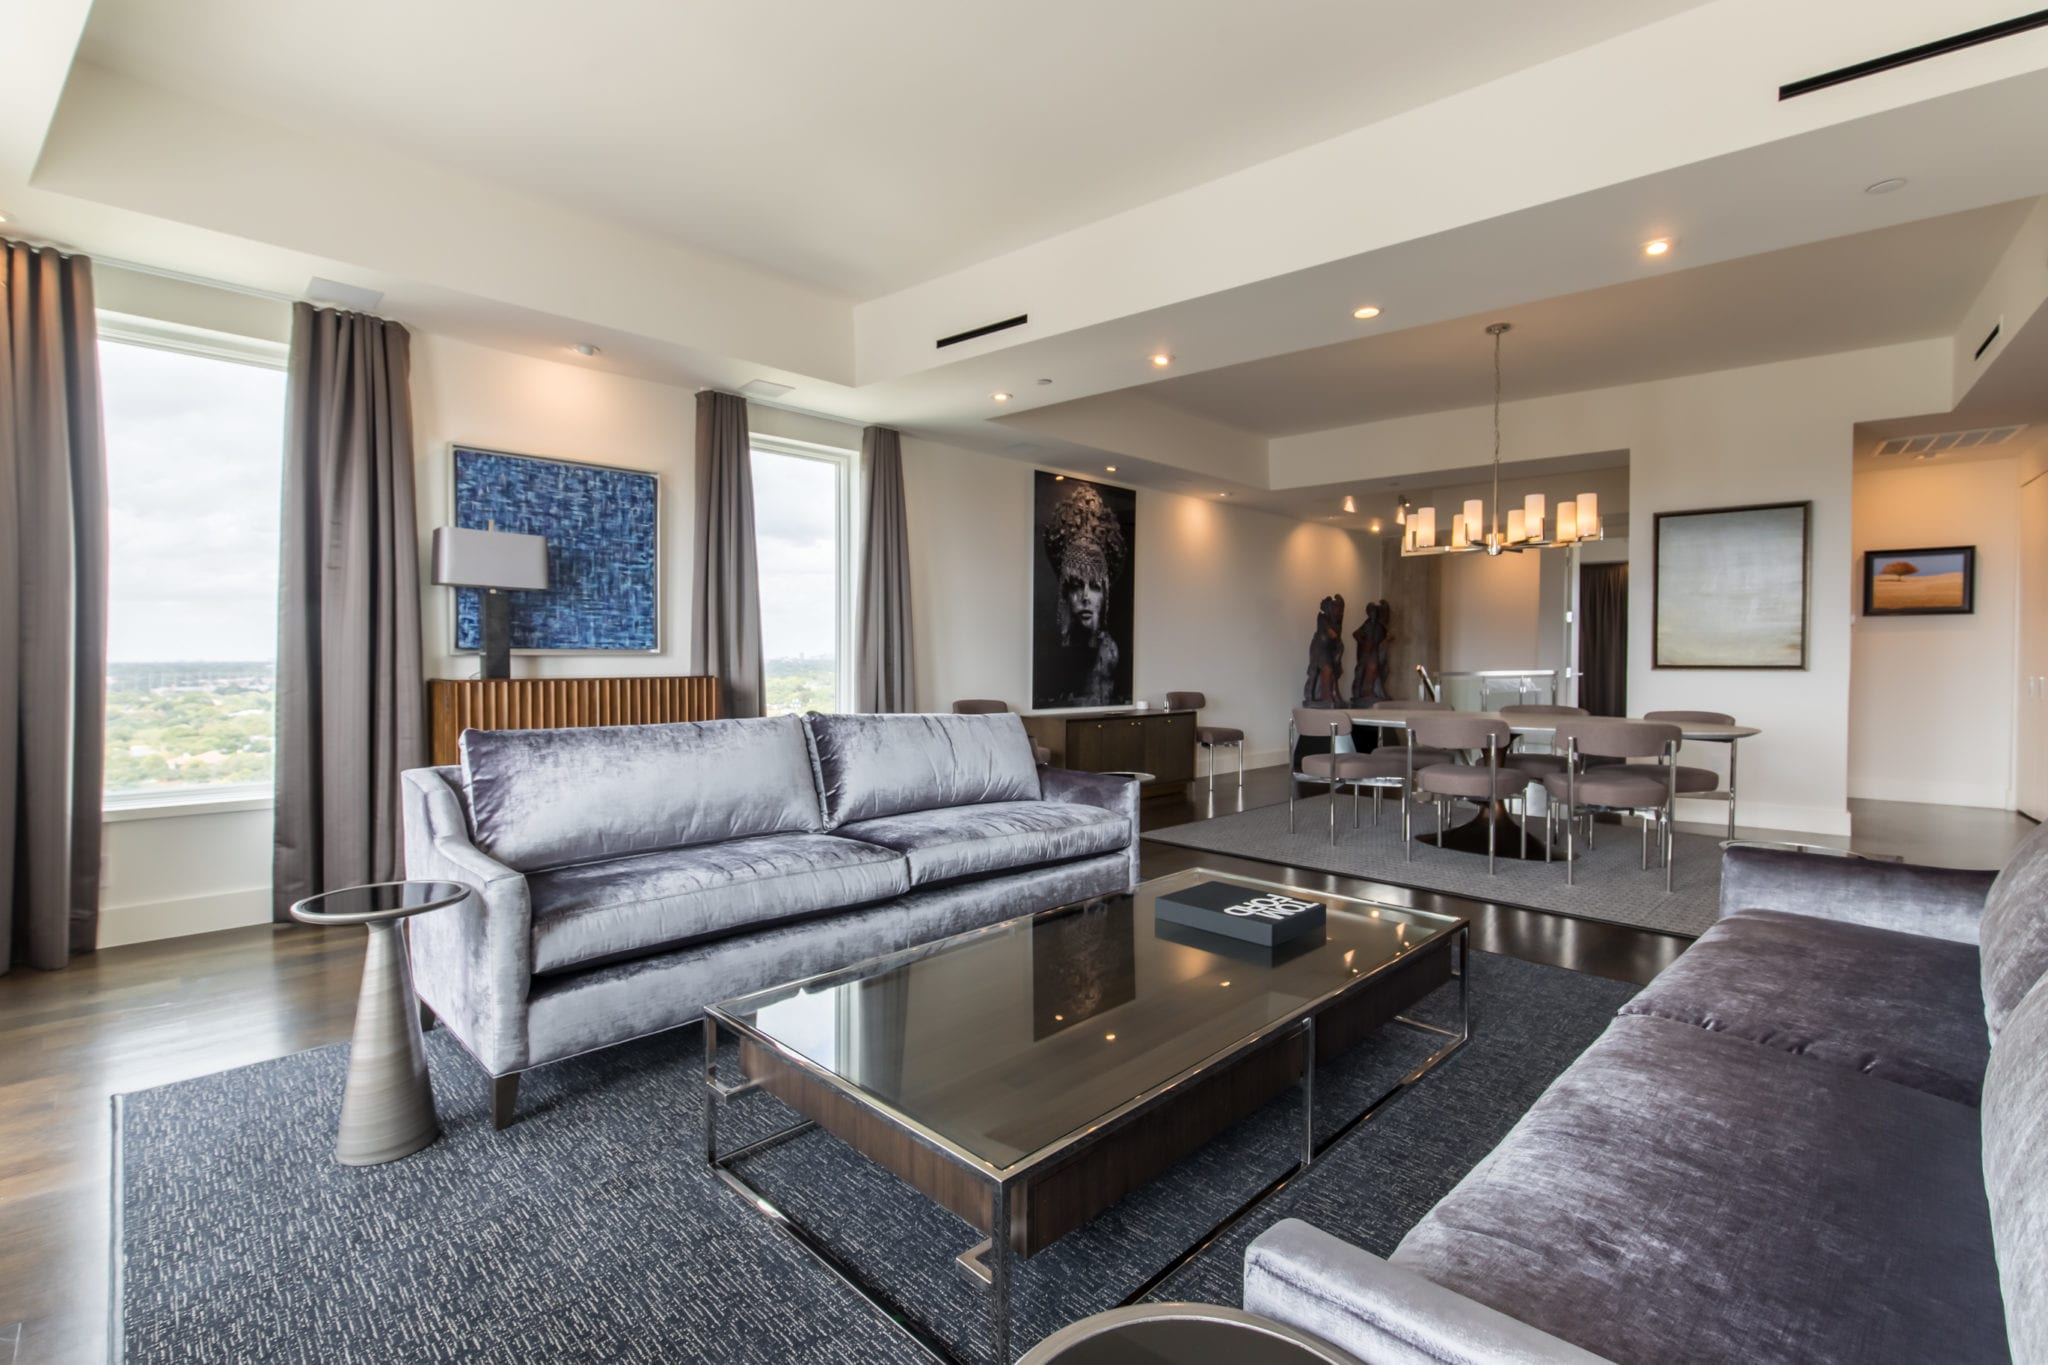 2-story-high-rise-condo-remodel-The-Travis-Katy-Trail-Living-room-view